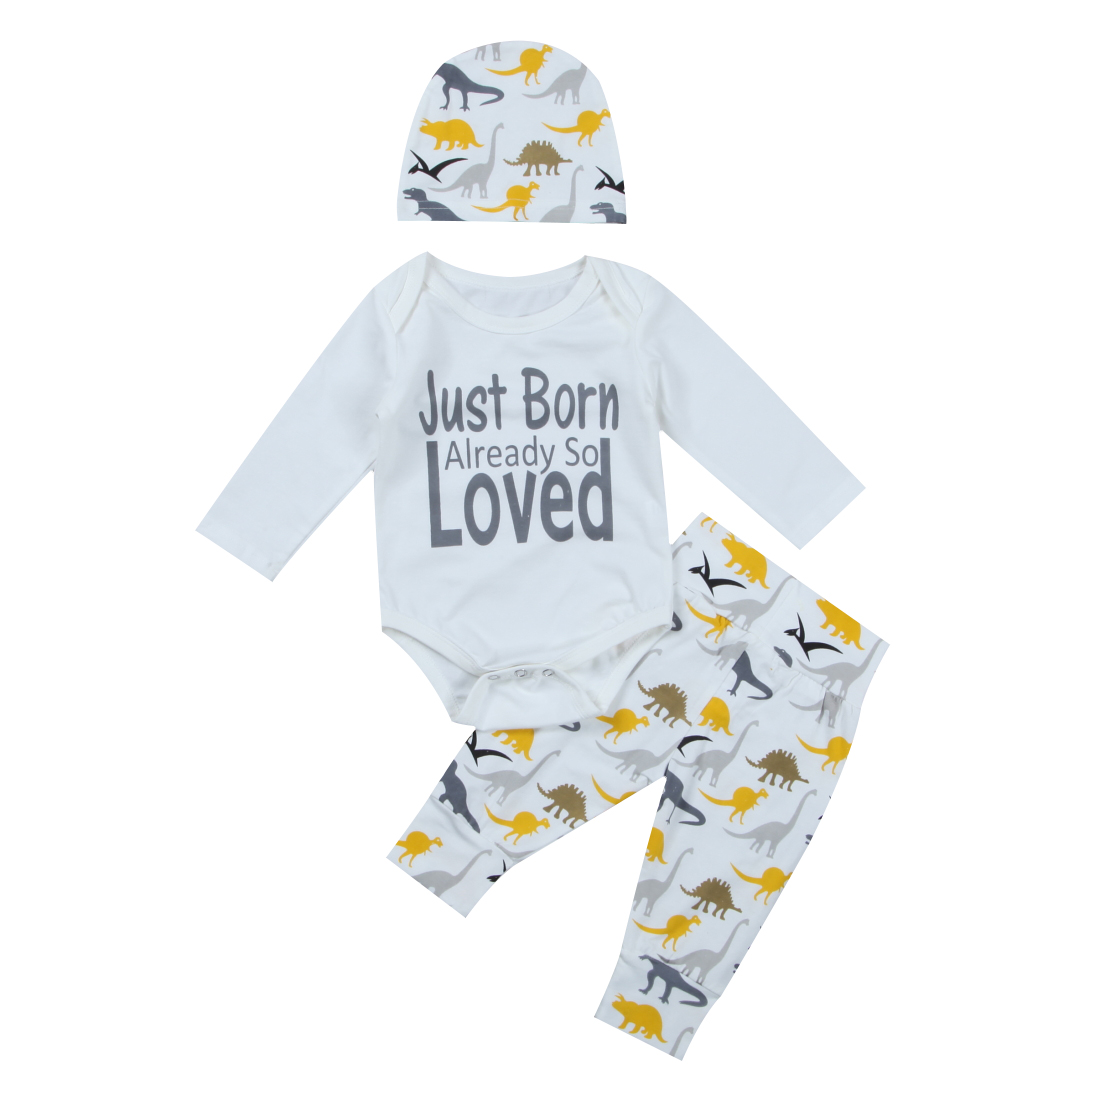 Toddler Infant Baby Boy Girl Clothes Romper Print Pants Outfits Set Newborn Girls Boys Daily Playsuits Cotton Clothing Set